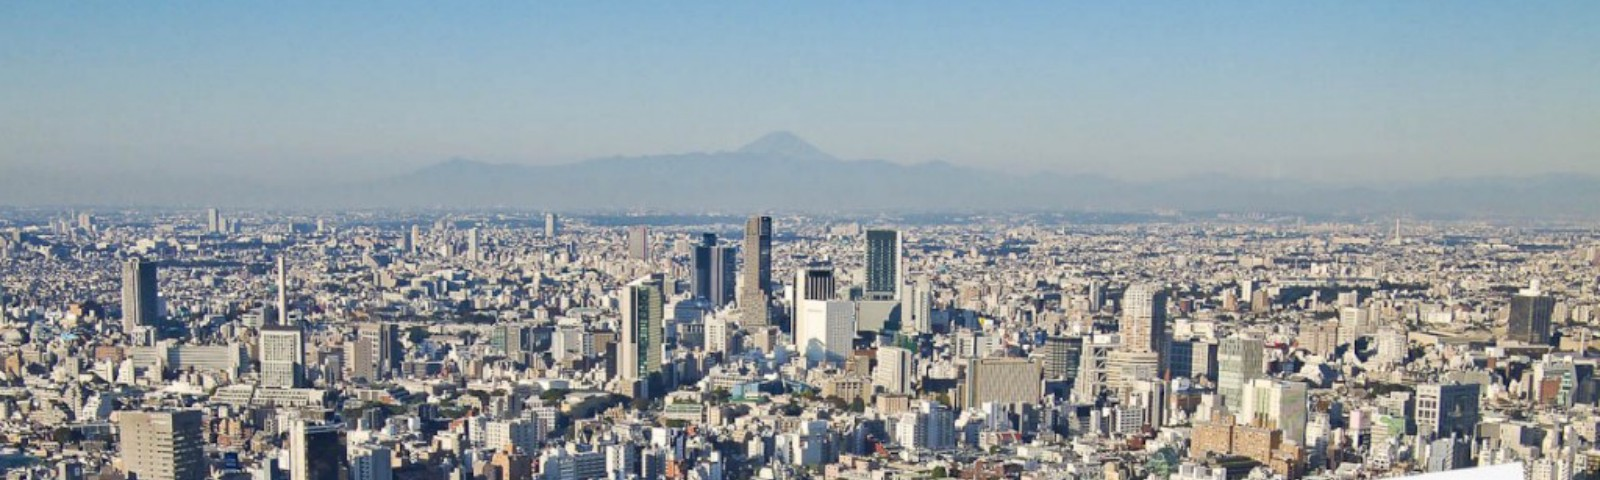 Looking out into Tokyo, with Mount Fuji in the background